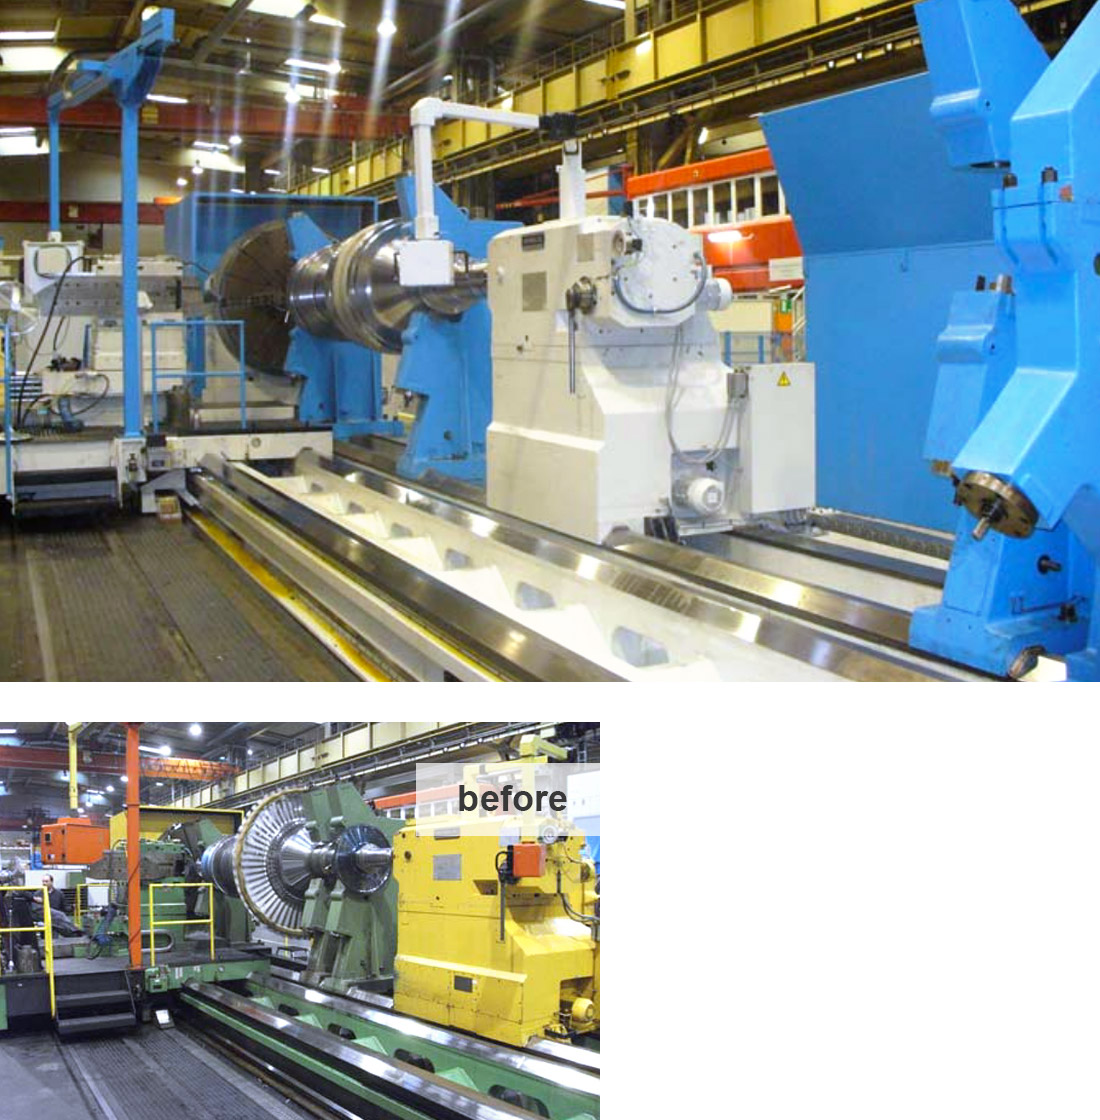 EDM Technik, Machine tool modernization, Modernization Heavy Duty Lathe, Dörries machine tool production